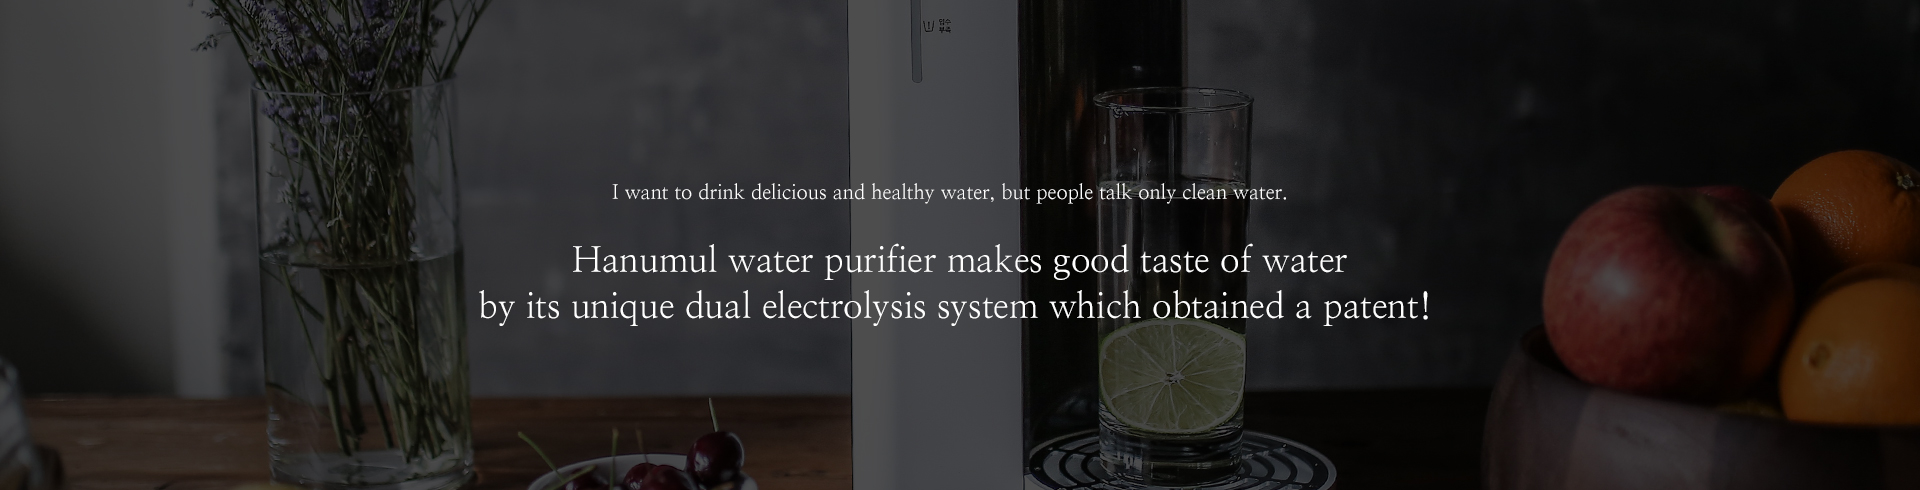 I want to drink delicious and healthy water, but people talk only clean water.Hanumul water purifier makes good taste of water by its unique dual electrolysis system which obtained a patent!